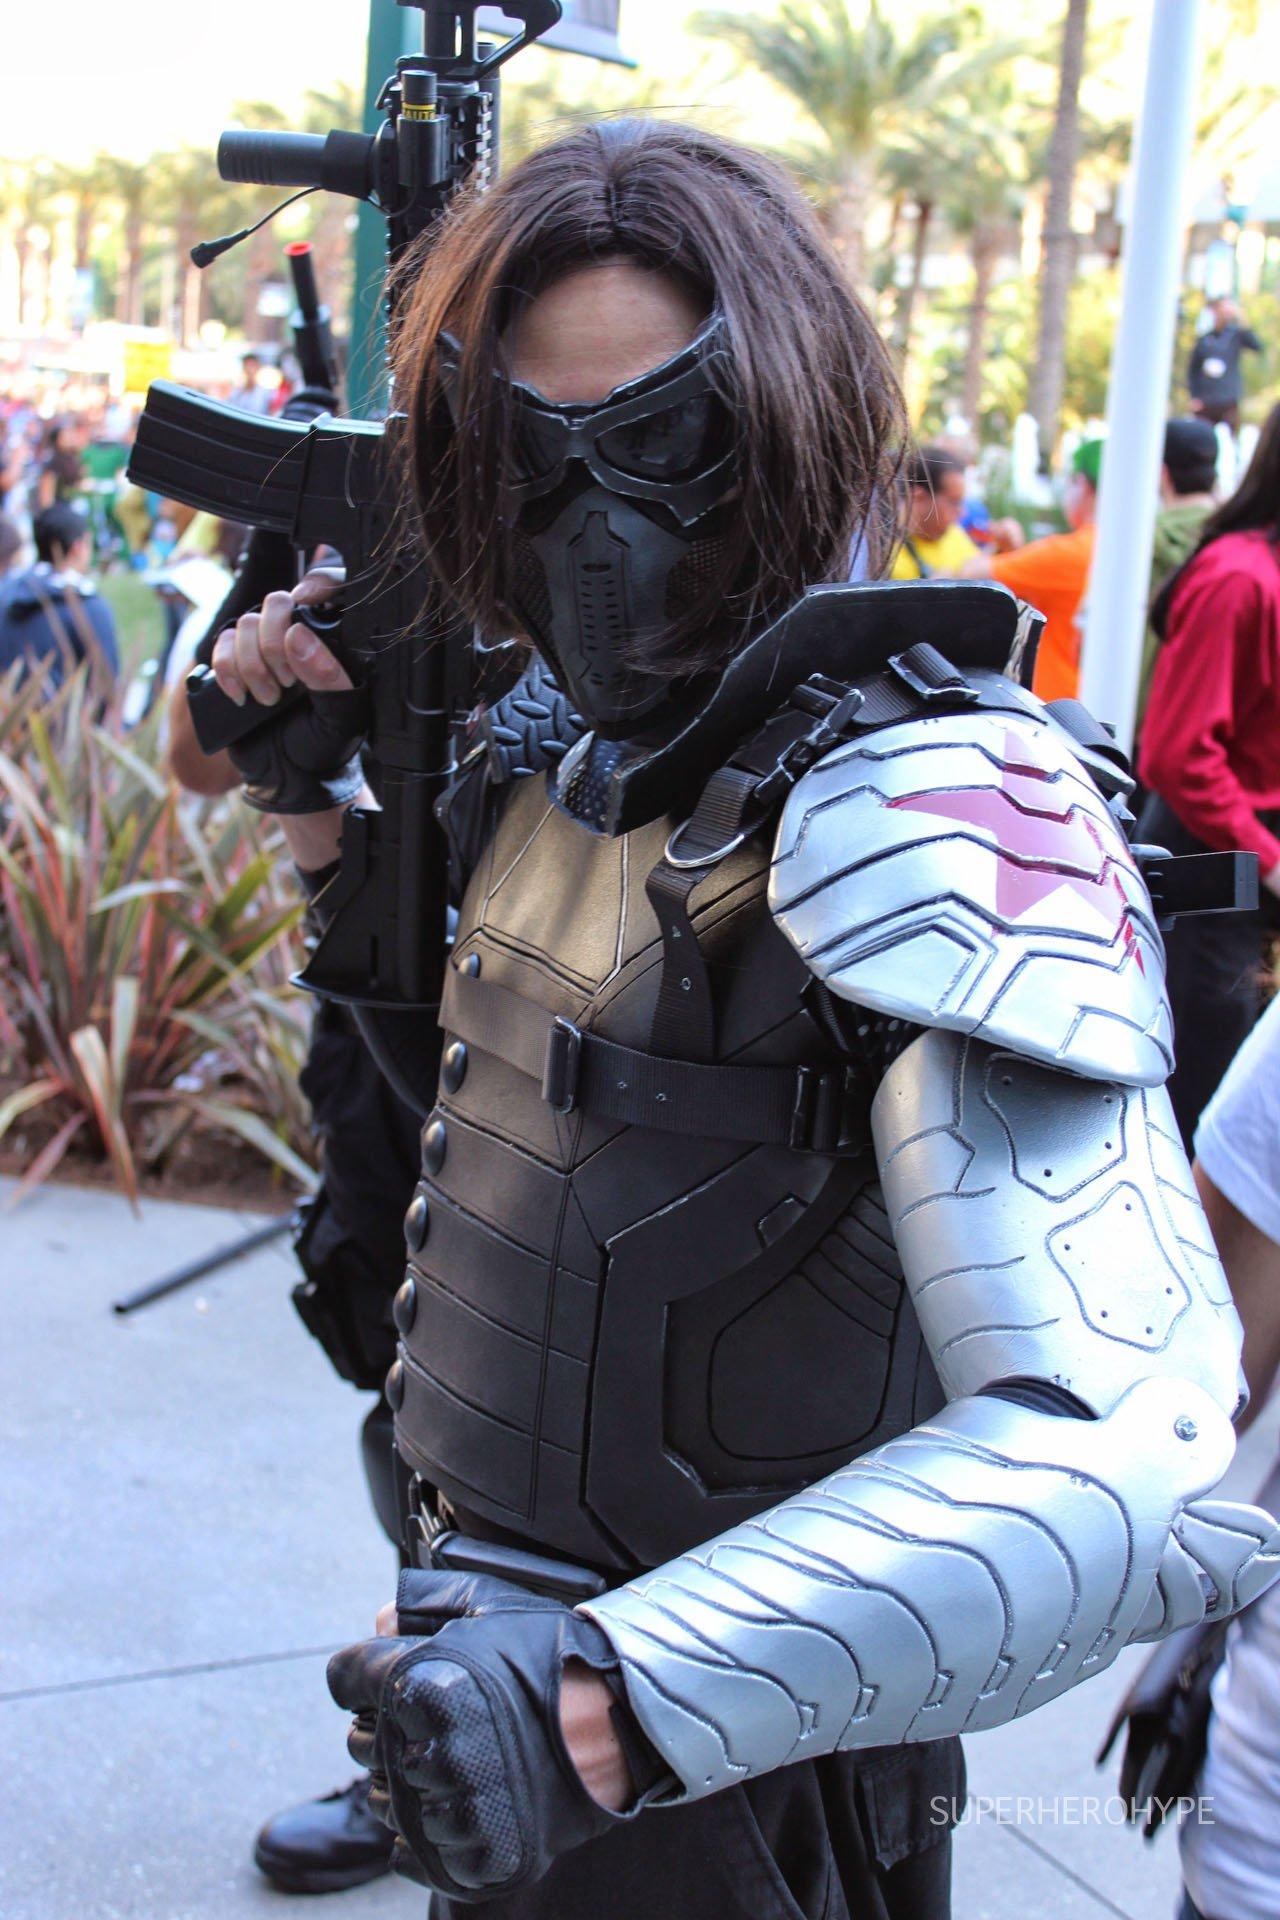 Winter Soldier CosplayWinter Soldier Cosplay Wondercon 2014